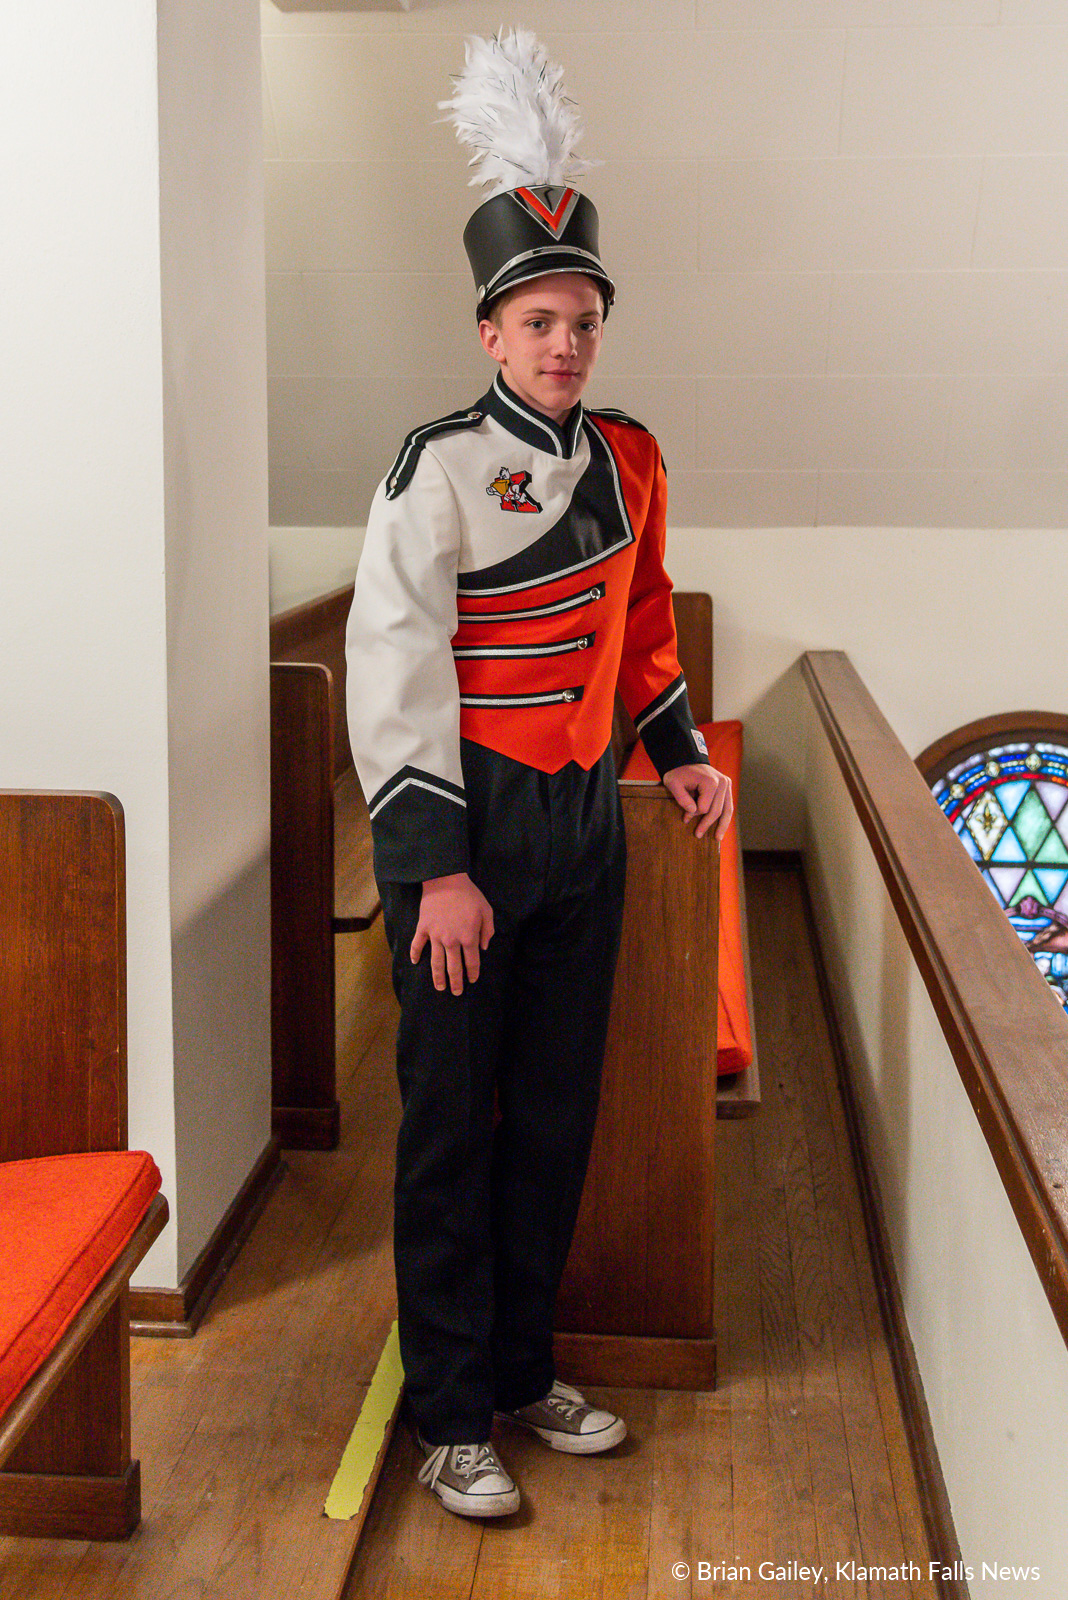 Tannyr Rose a KUHS Sophomore and trombone player models the concept uniform produced for the Klamath Union High School Marching Band. Final uniform may differ. January 15, 2018 (Brian Gailey)